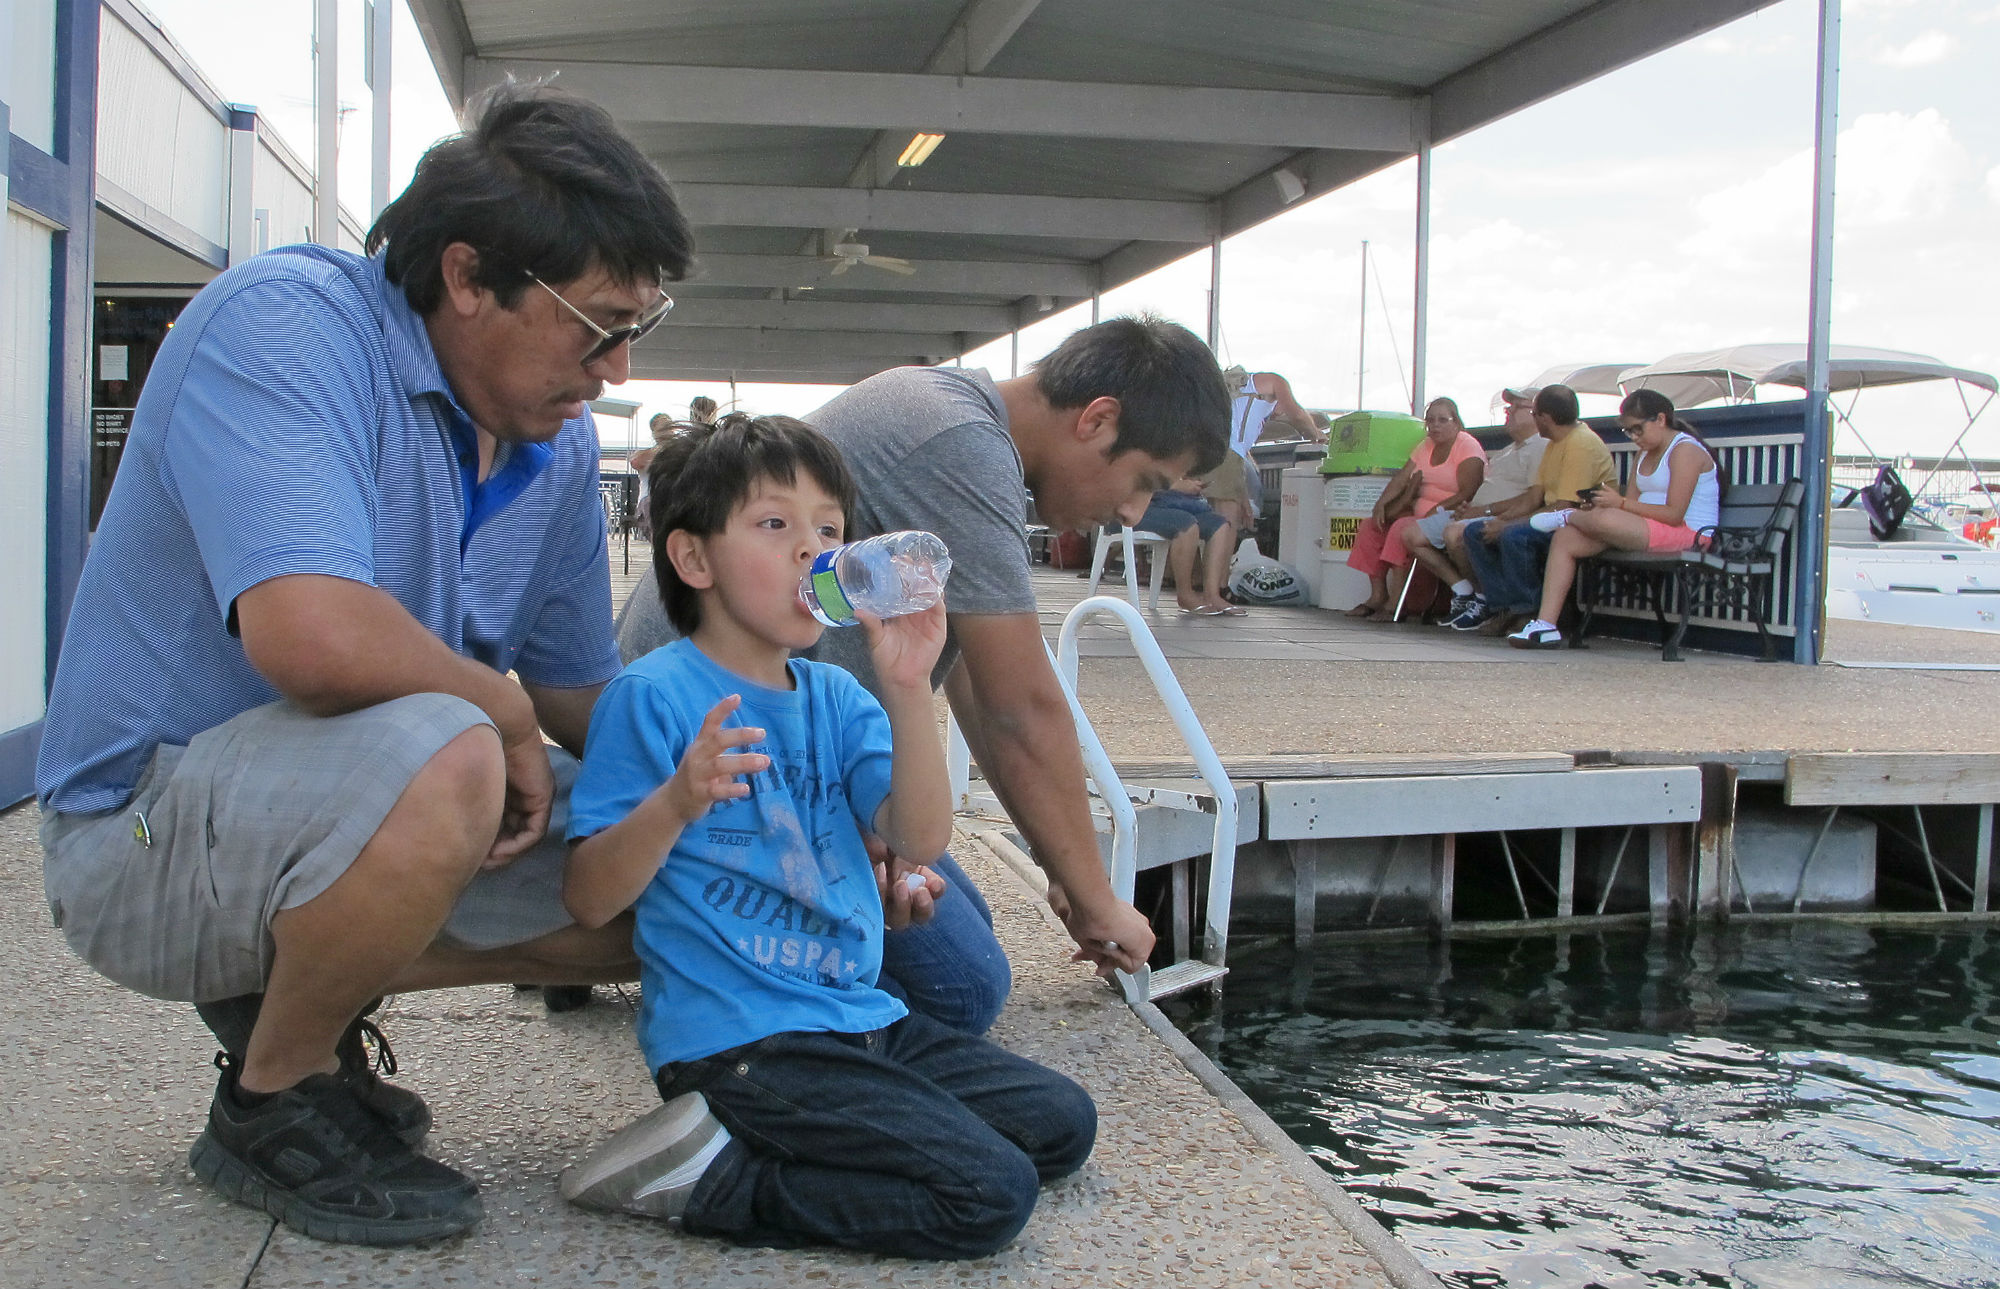 At the dock on one of the Grippentogs' marias, Raul Castro of Palm Springs, California, crouches by his two sons. Castro says that he brought them to Mead to teach them about the importance of water.